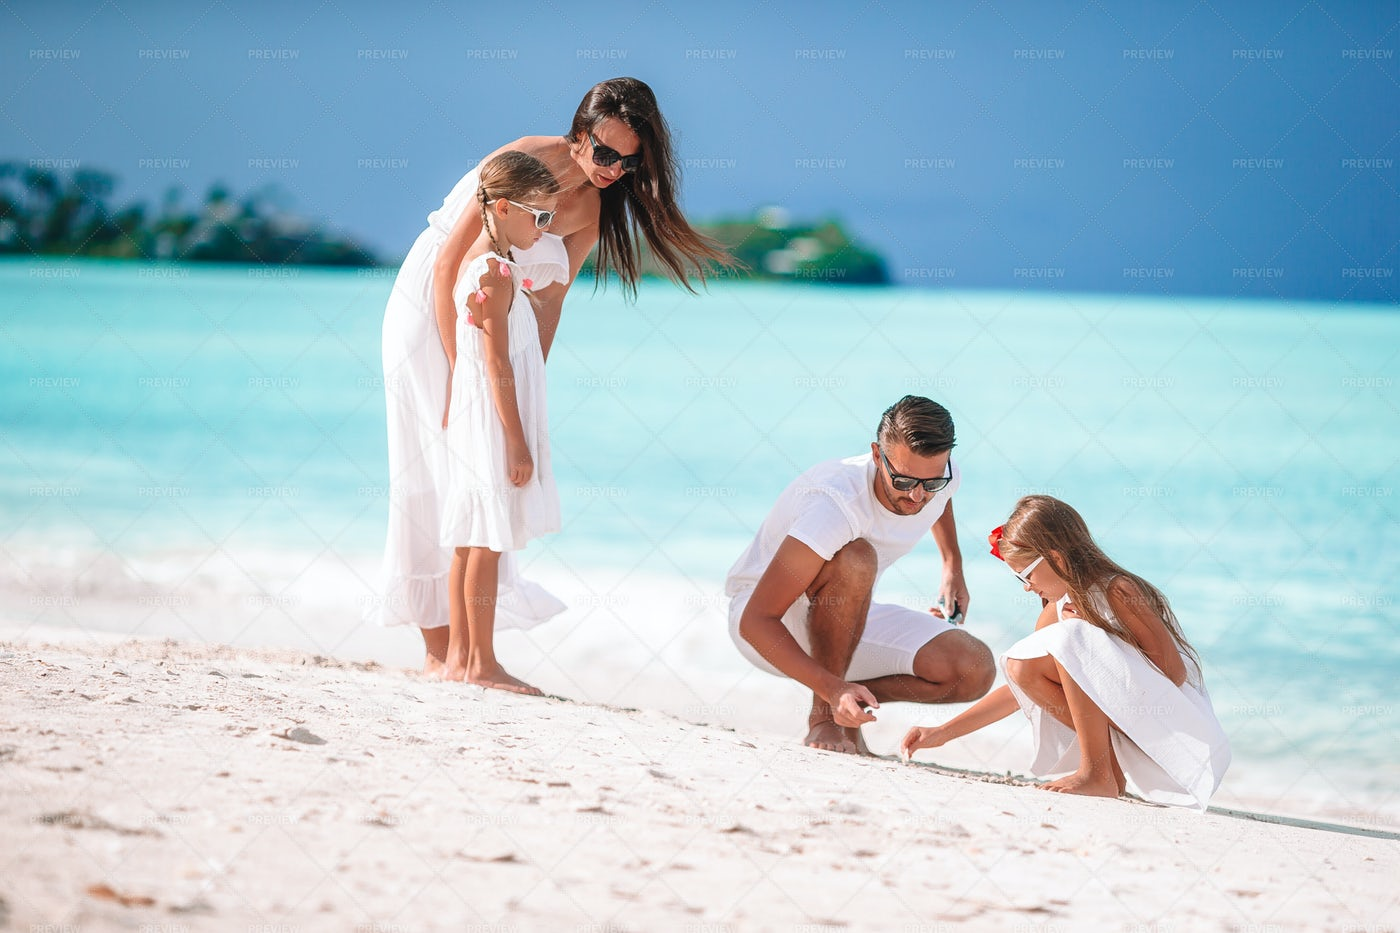 Family Dressed In White On The Beach: Stock Photos